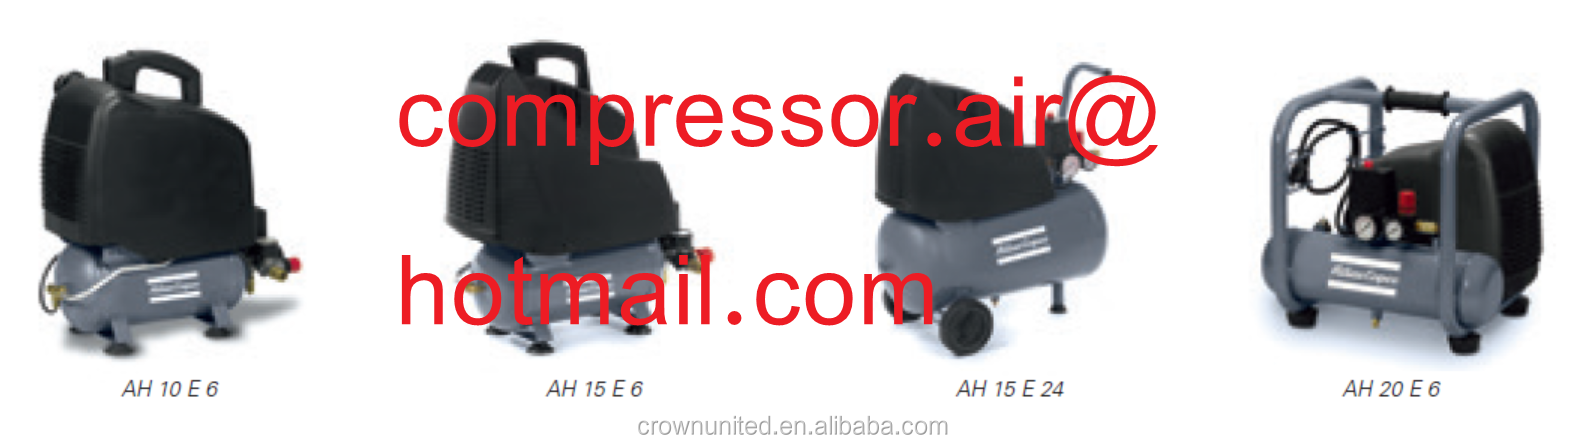 LT3-30 LT5-30 LT7-30 LT10-30 LT15-30 LT20-30, LT OIL-LUBRICATED PISTON AIR COMPRESSOR 30BAR